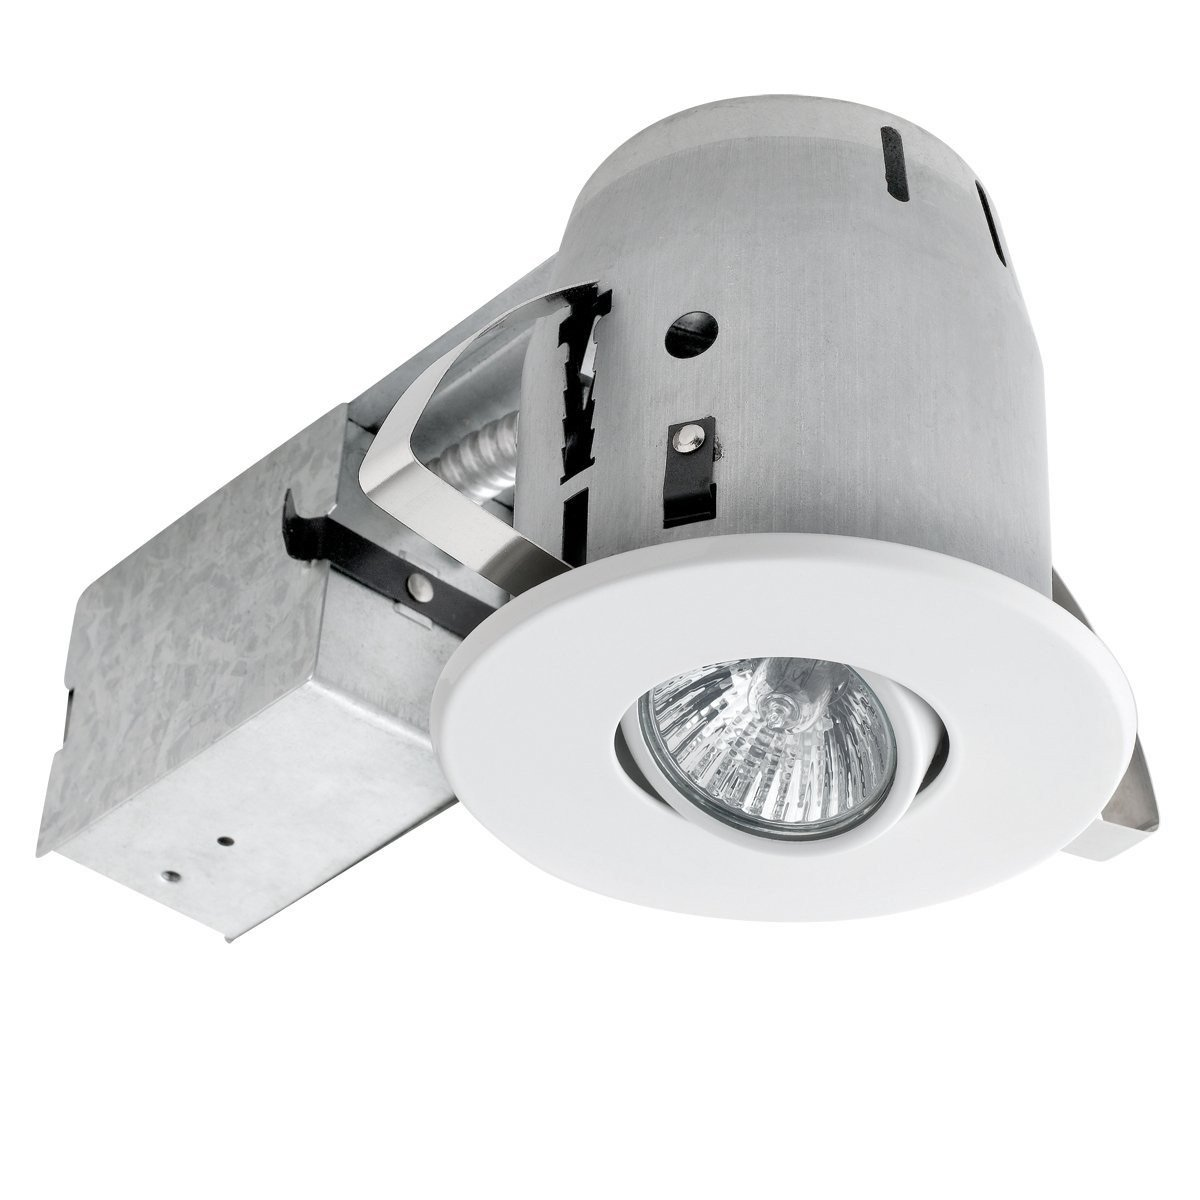 Globe electric 4 swivel spotlight recessed lighting kit 10 pack globe electric 4 swivel spotlight recessed lighting kit 10 pack dimmable downlight round trim white finish easy install push n click clips 90540 mozeypictures Gallery